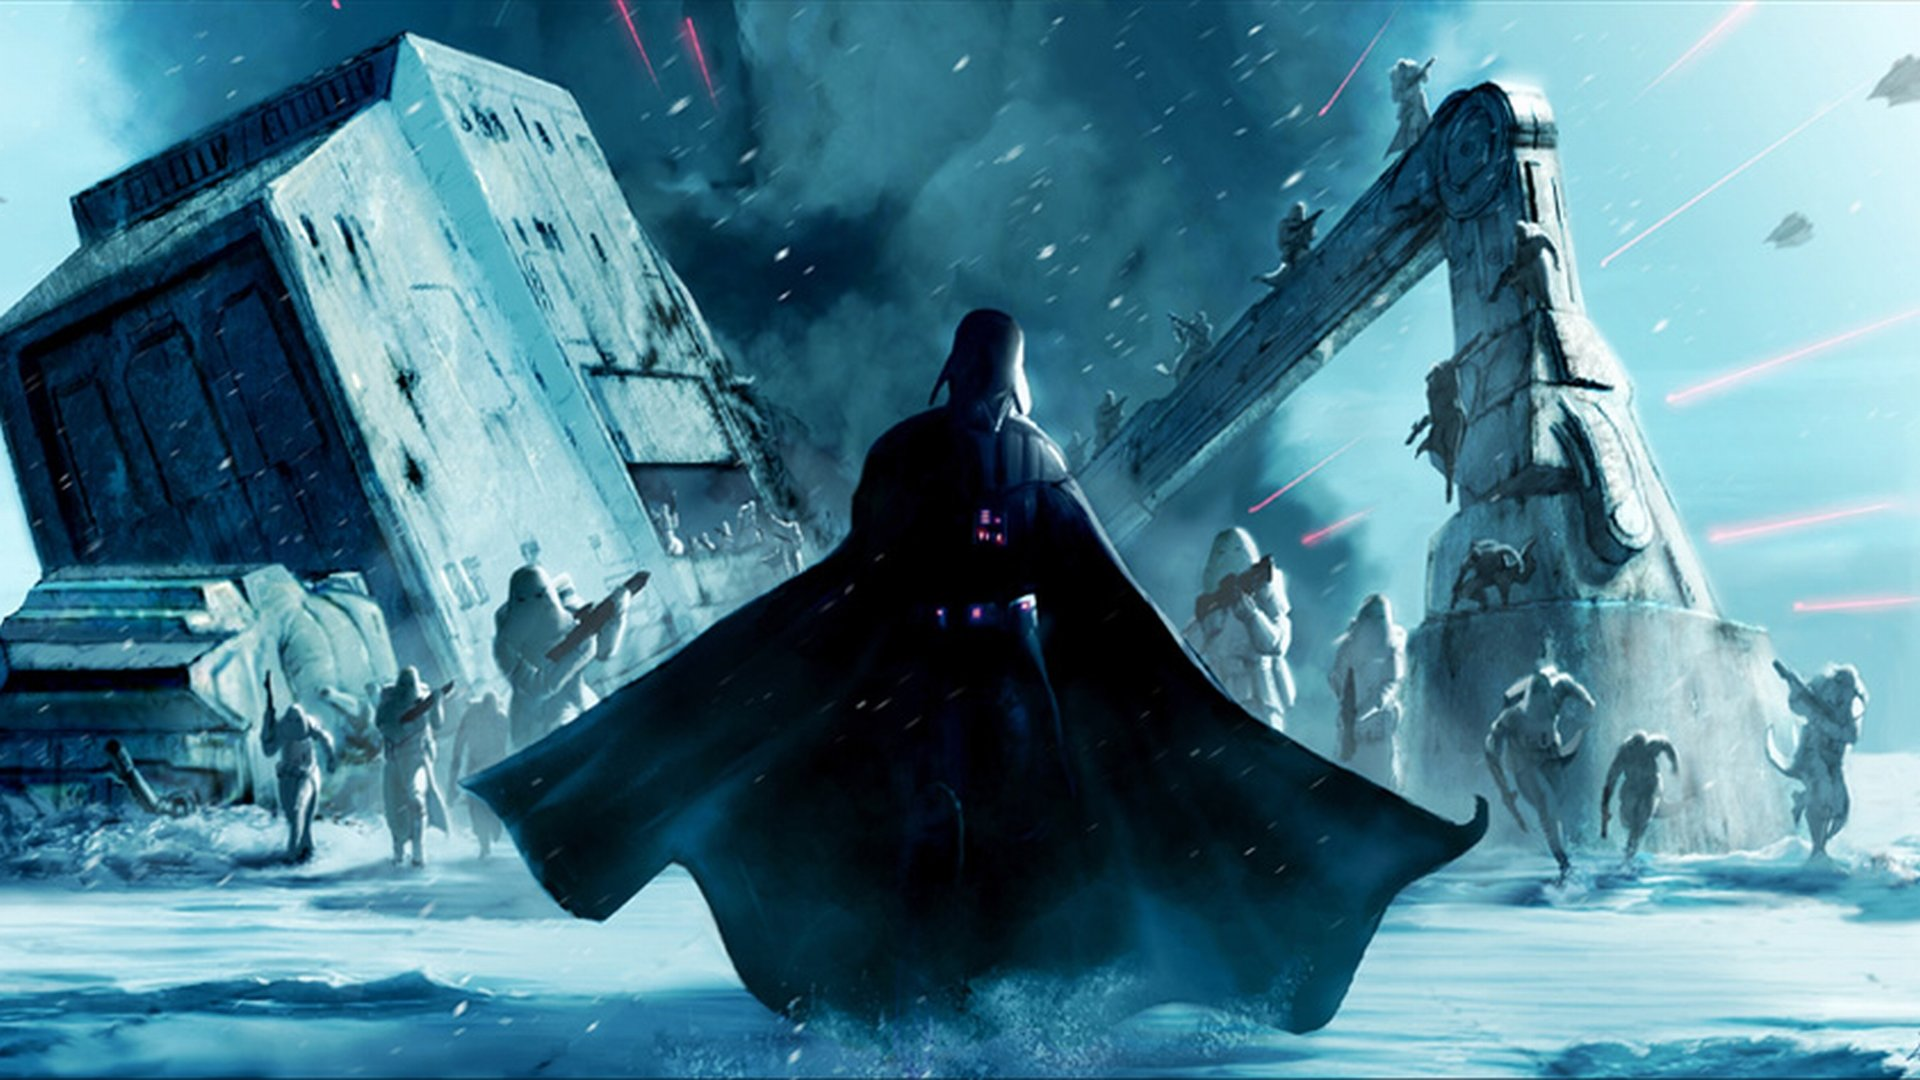 1920x1080 - 1920x1080 HD Wallpapers Star Wars 27